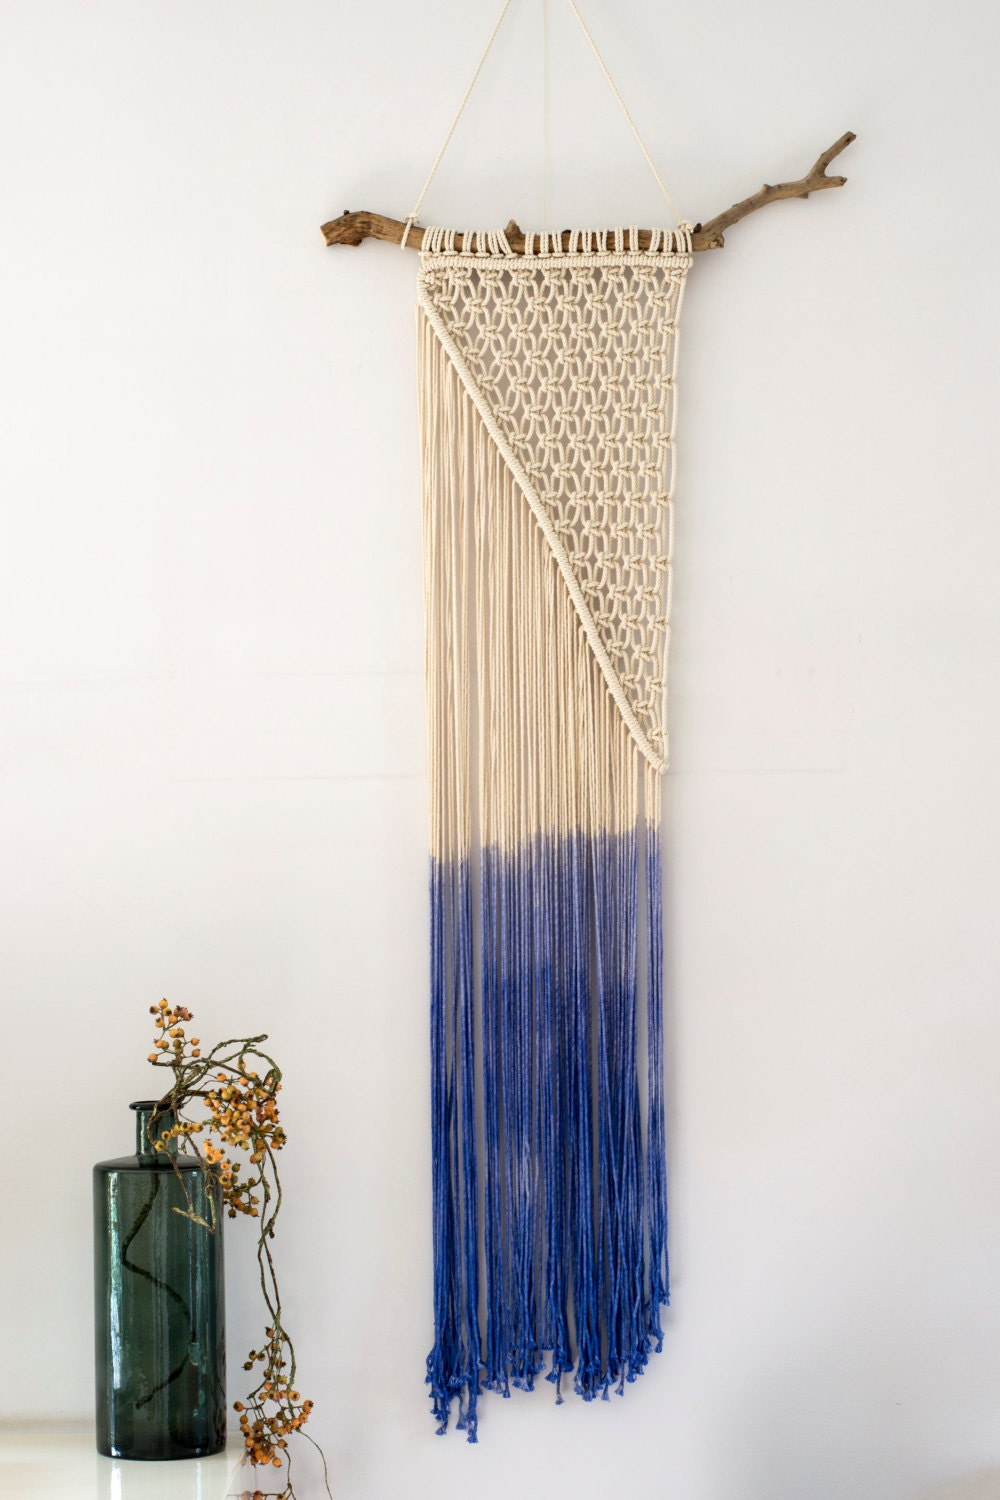 Macrame Wall Hanging Dip Dye In Ocean Blue Modern Macrame. Living Room Chairs In Red. Living Room Wall Colour Images. Living Room Decorating Ideas Around A Fireplace. Ubuntu Living Room Pc. Living Room Suites Northern Ireland. Living Room Layouts Ikea. Living Room Ideas In The Philippines. Open Living Room And Dining Room Paint Ideas